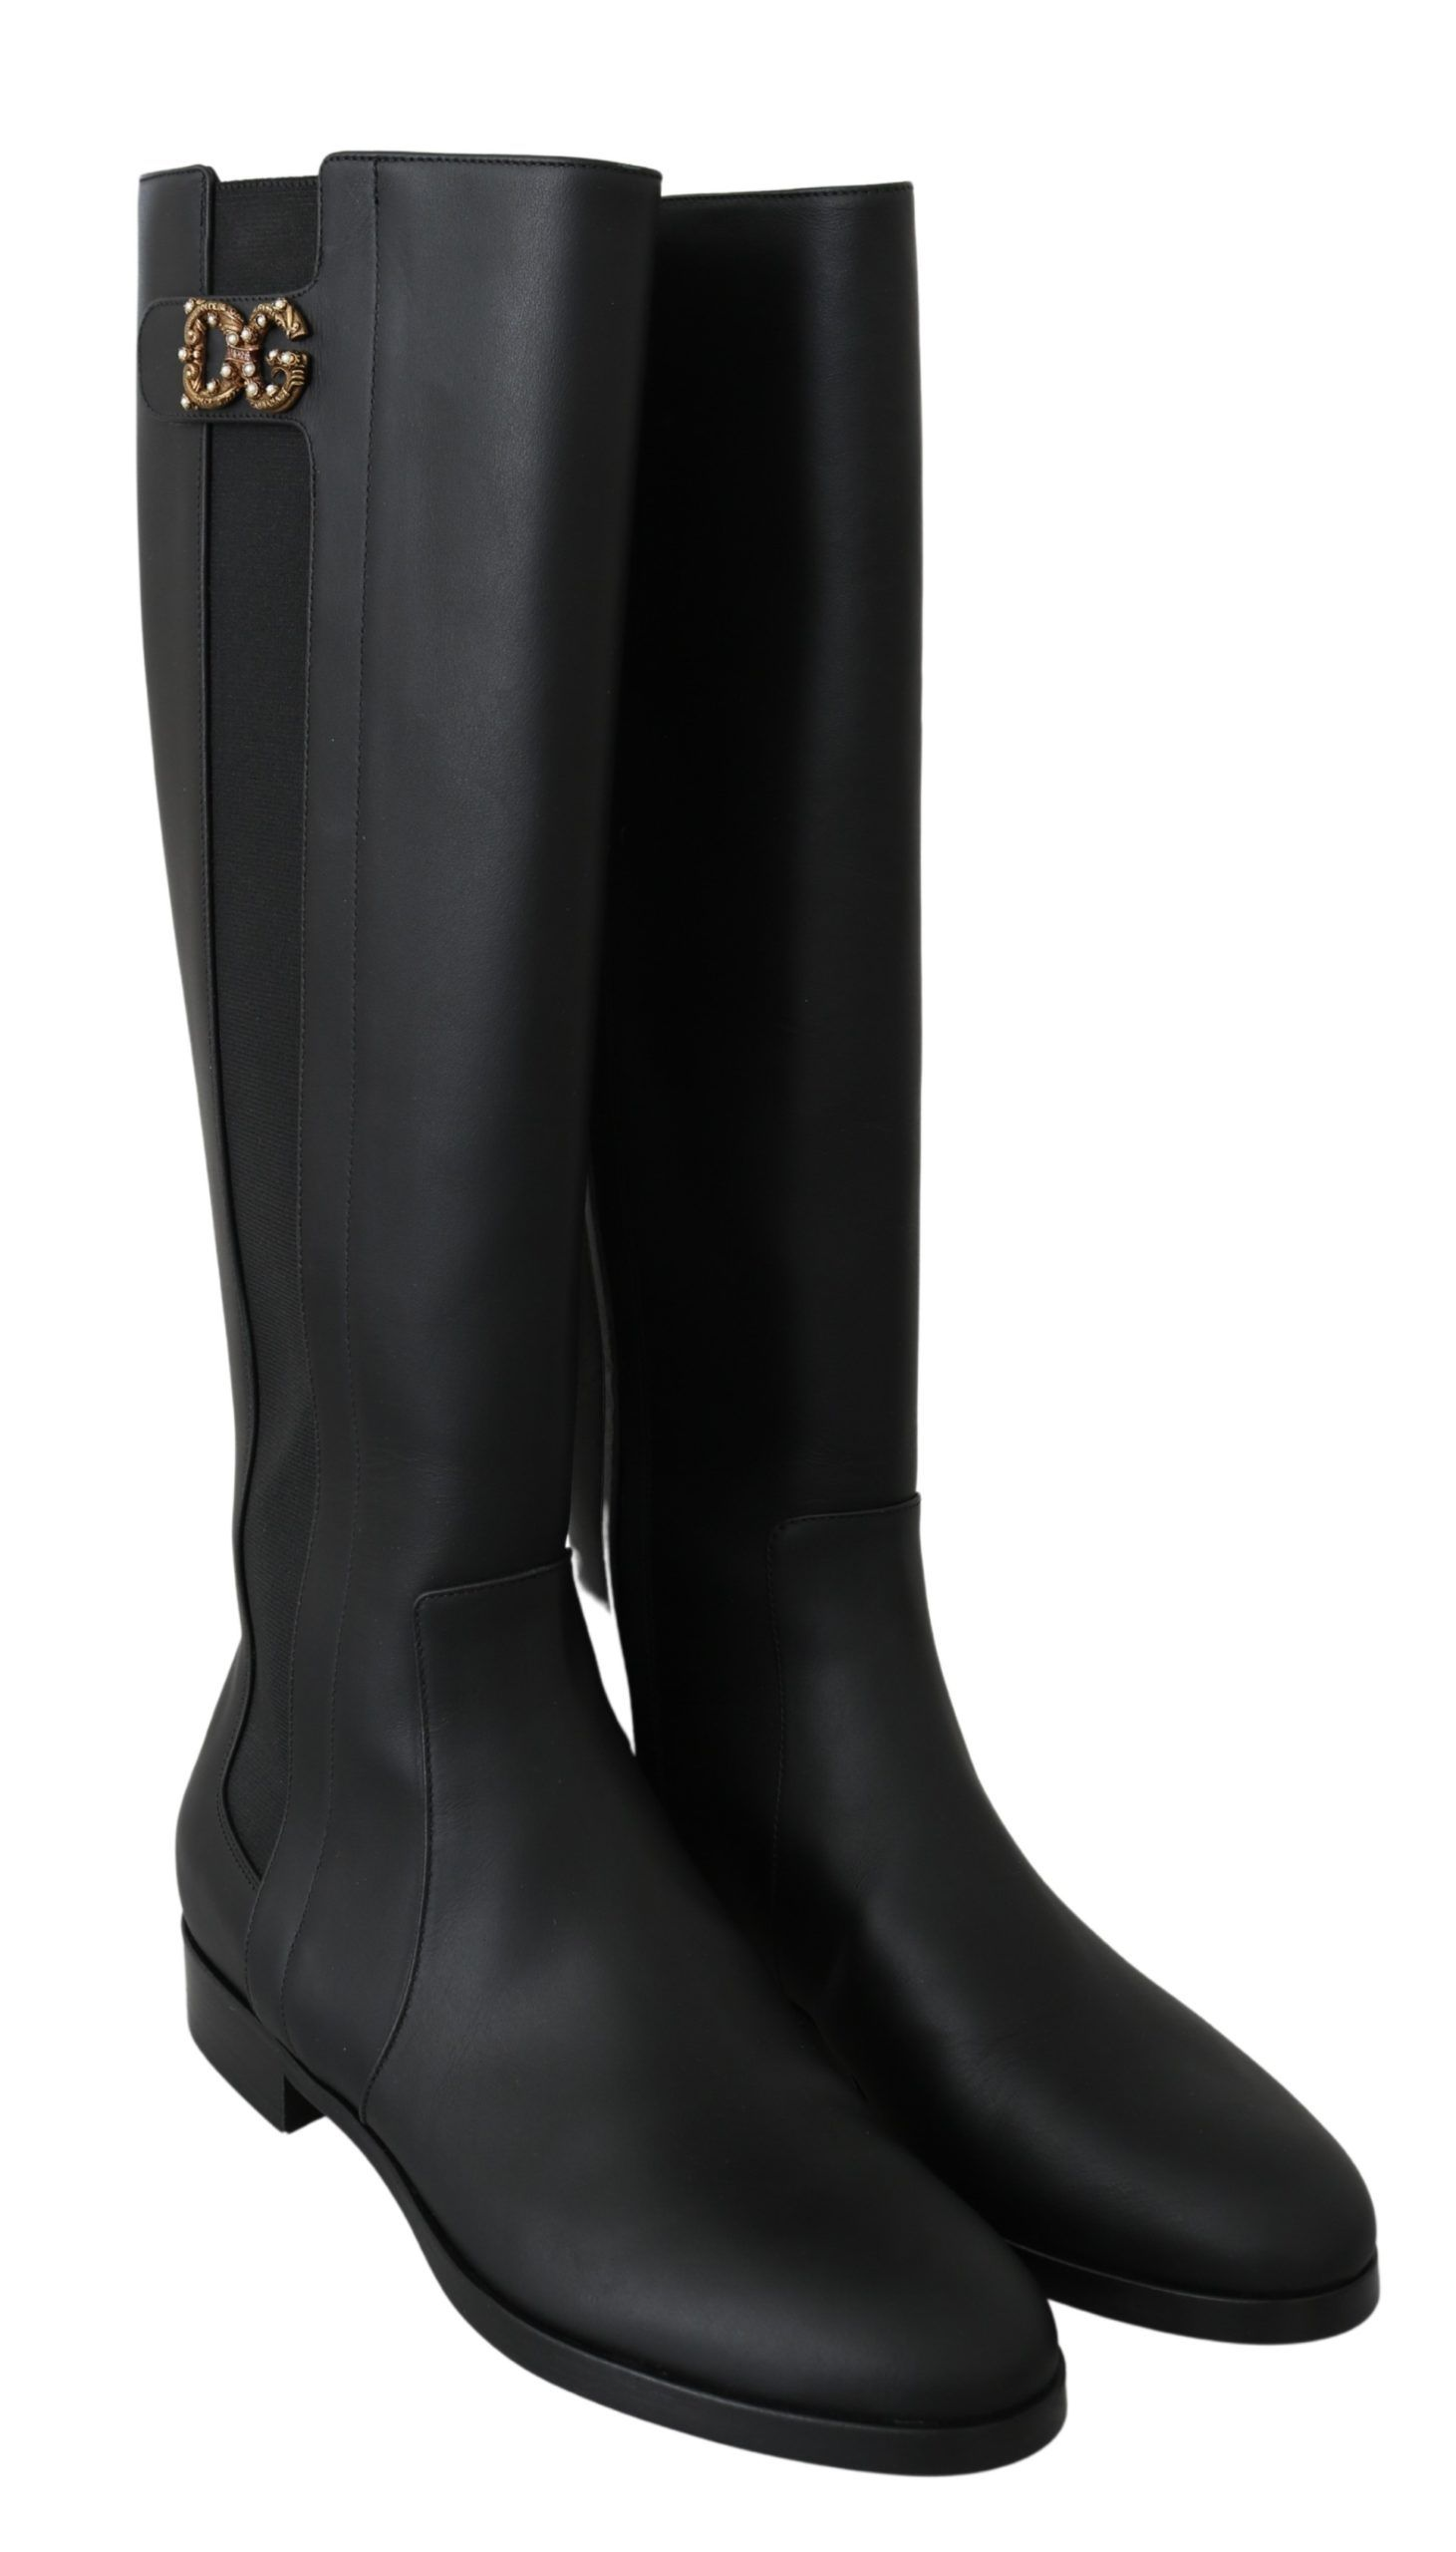 Dolce & Gabbana Black Leather Knee High Boots Shoes